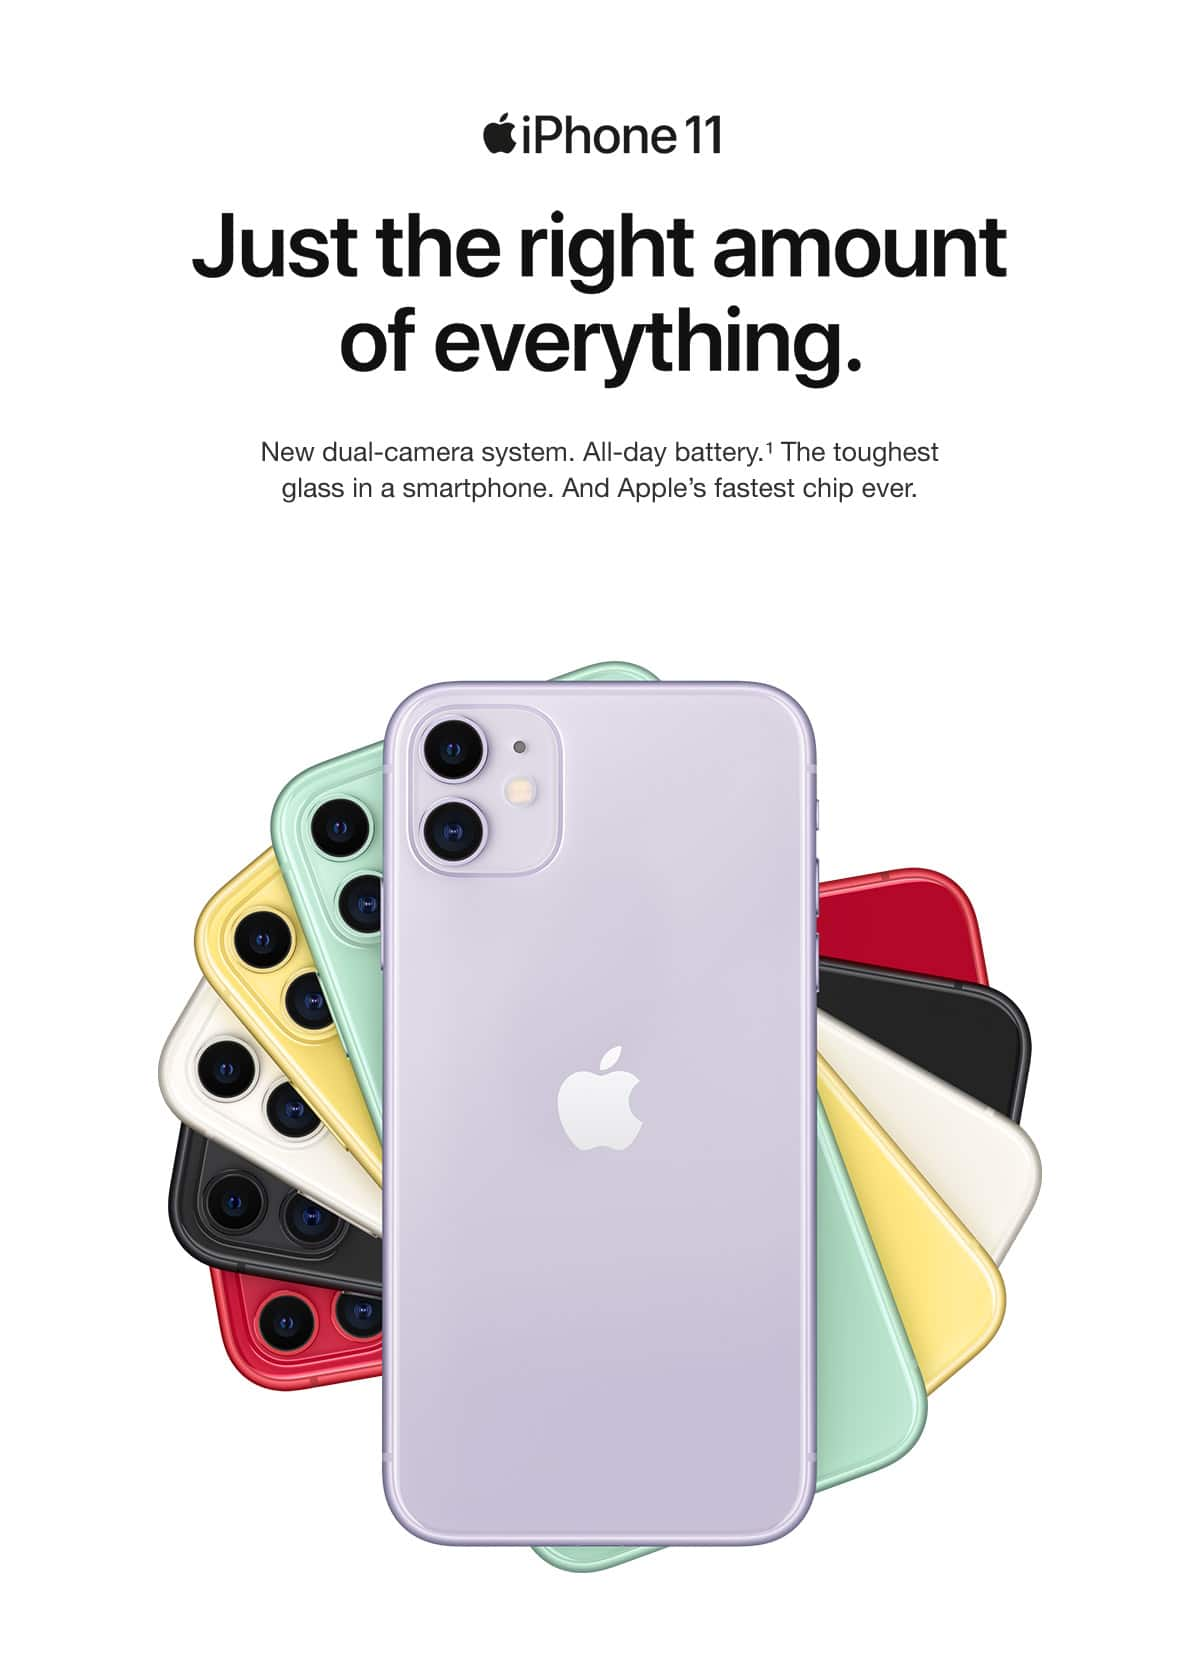 Sprint (now part of T-Mobile): Free Apple iPhone 11 via 24 monthly bill credits with port in and qualifying trade in